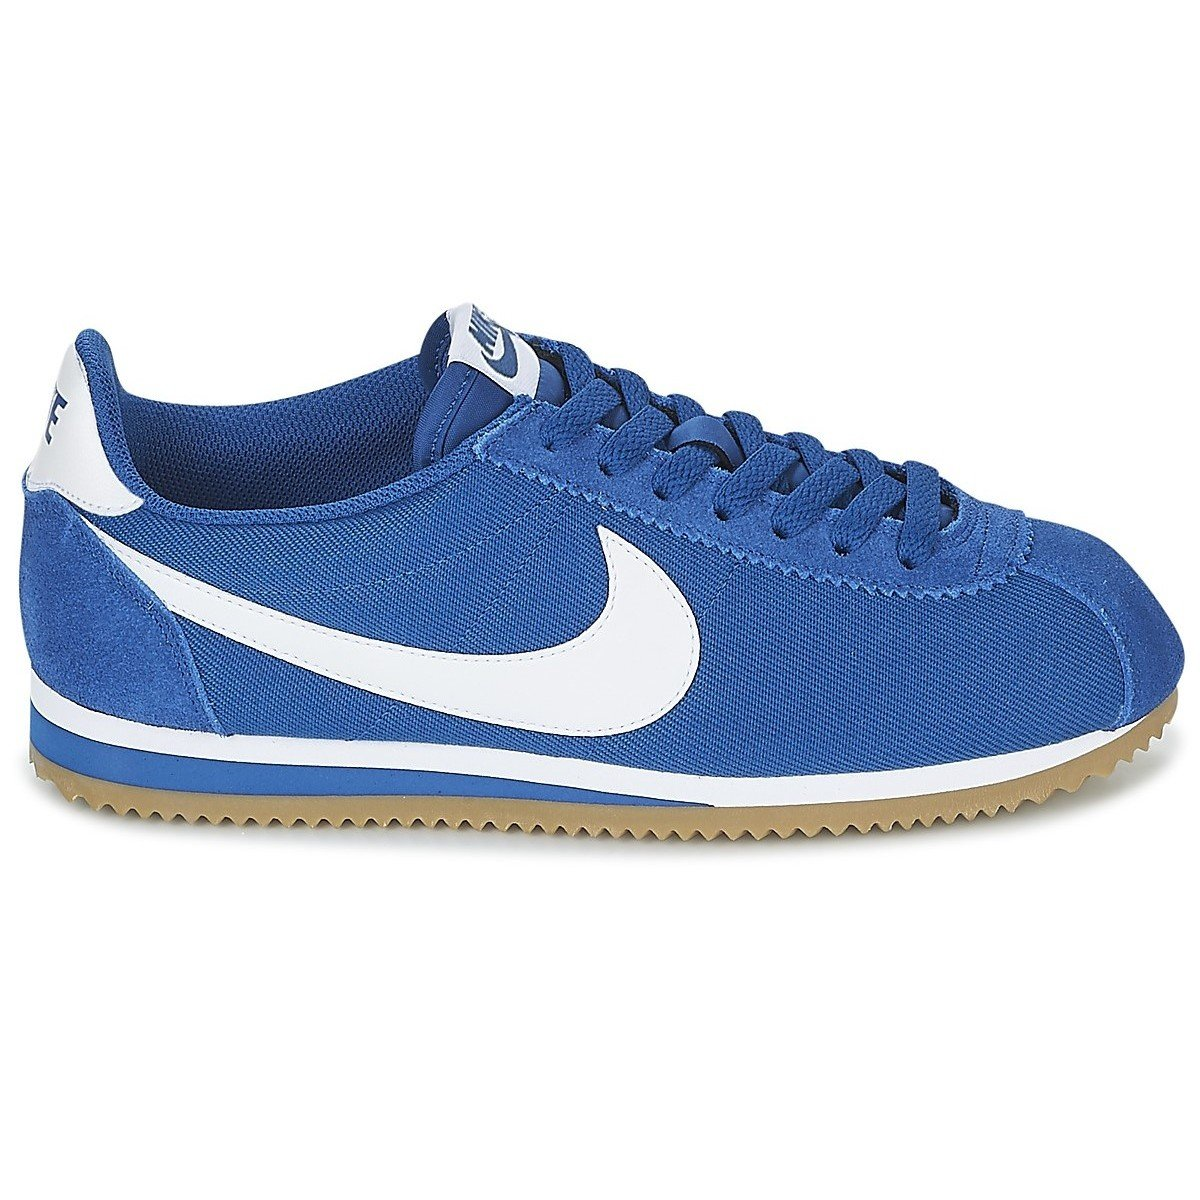 cheap for discount 71c07 15113 Galleon - NIKE Classic Cortez Nylon Mens Fashion-Sneakers 807472-405 11.5 -  Gym Blue White-Gum Light Brown